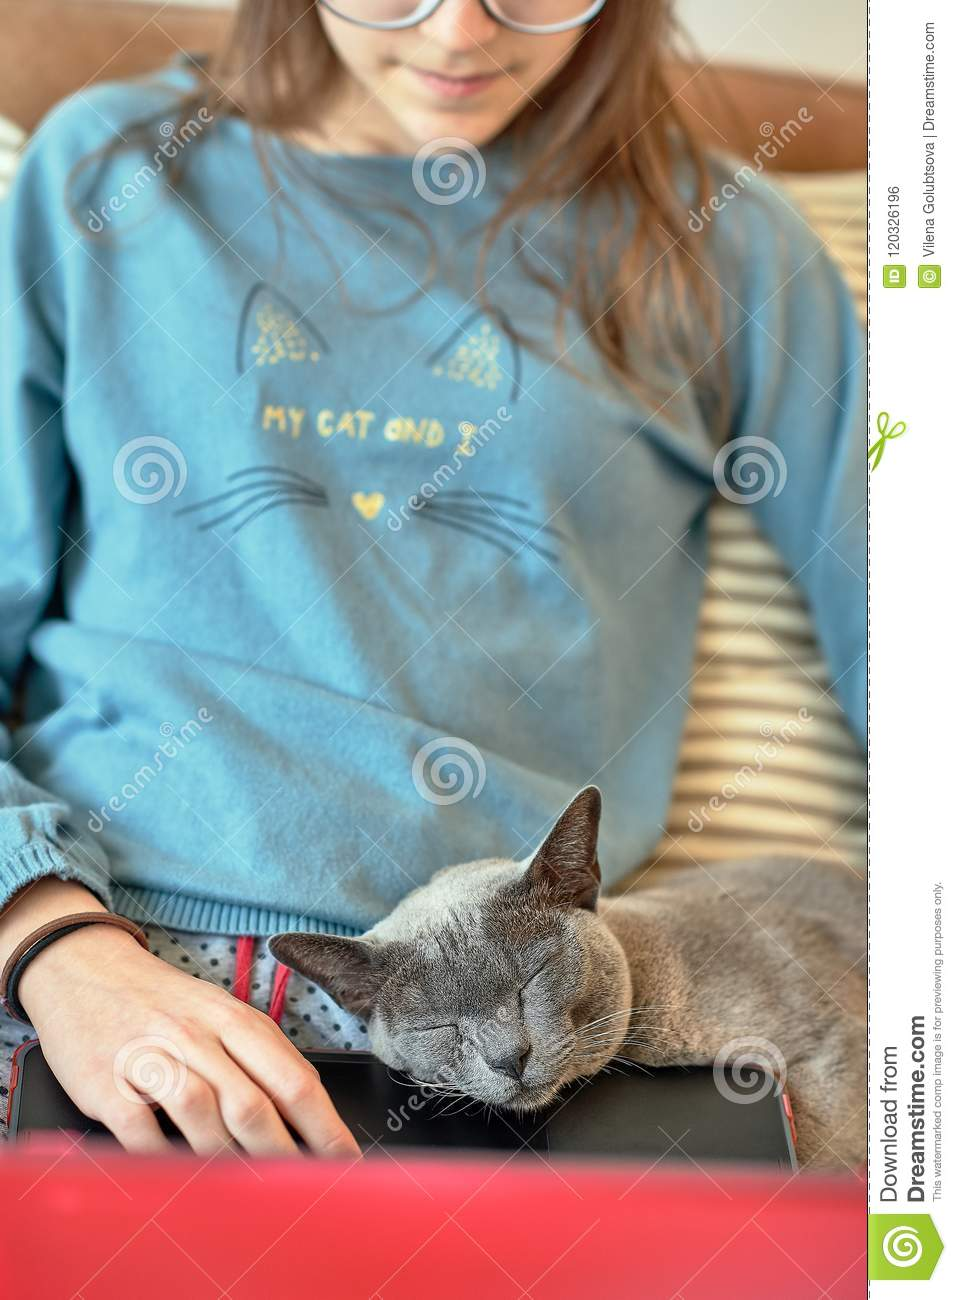 A sleeping British cat in the hands of a busy housewife